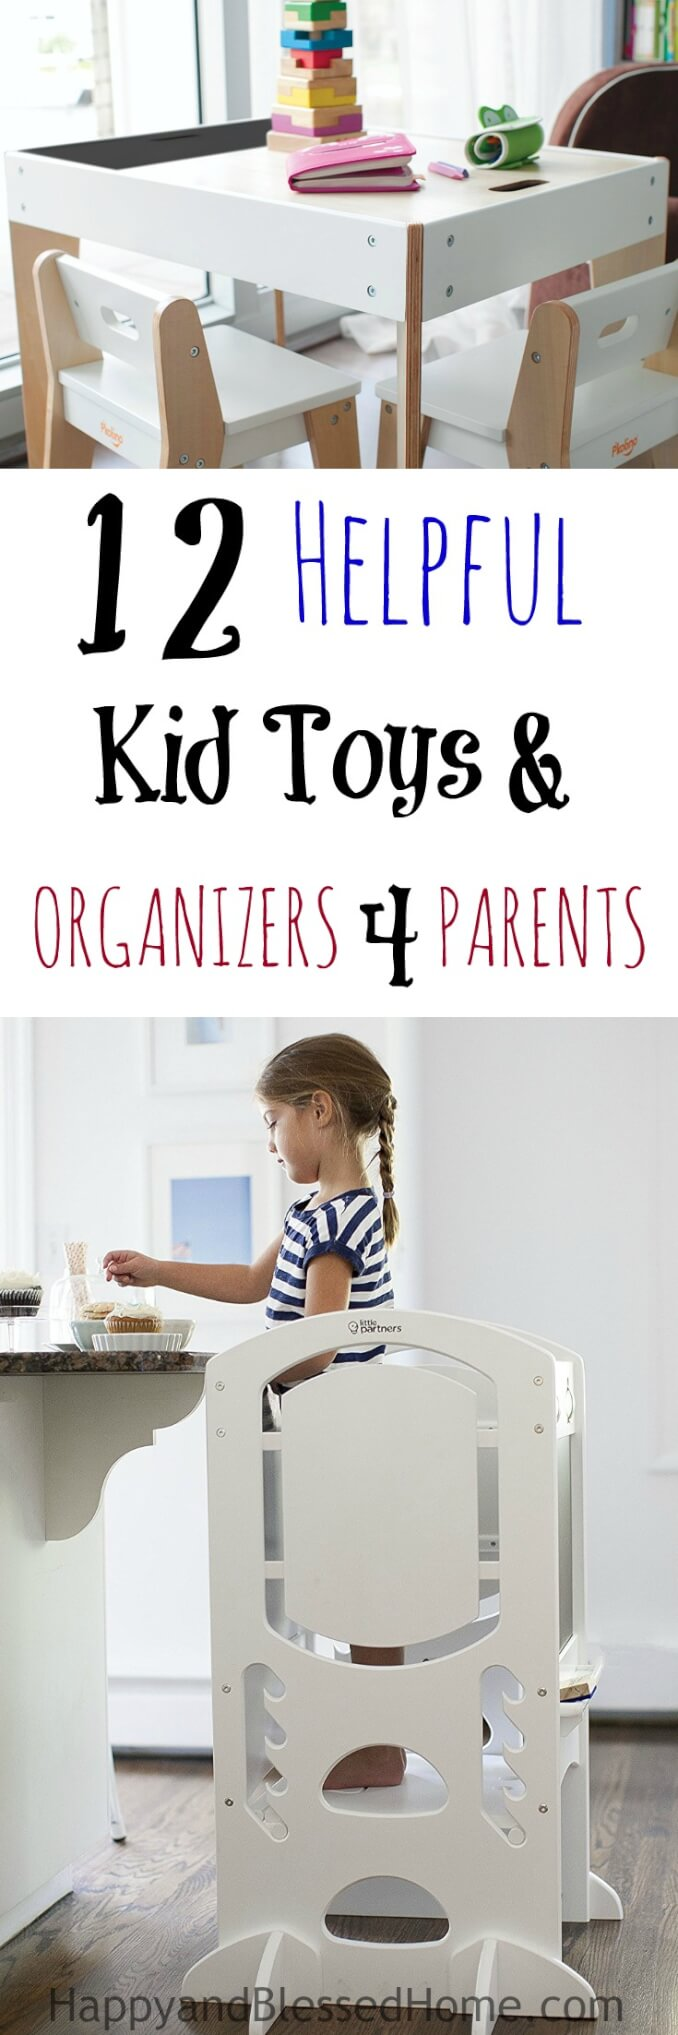 Parents, stop the mess. This list of 12 Helpful Kid Toys and Organizers for Parents is packed full of helpful tips. Plus toys to keep kids away from the TV.